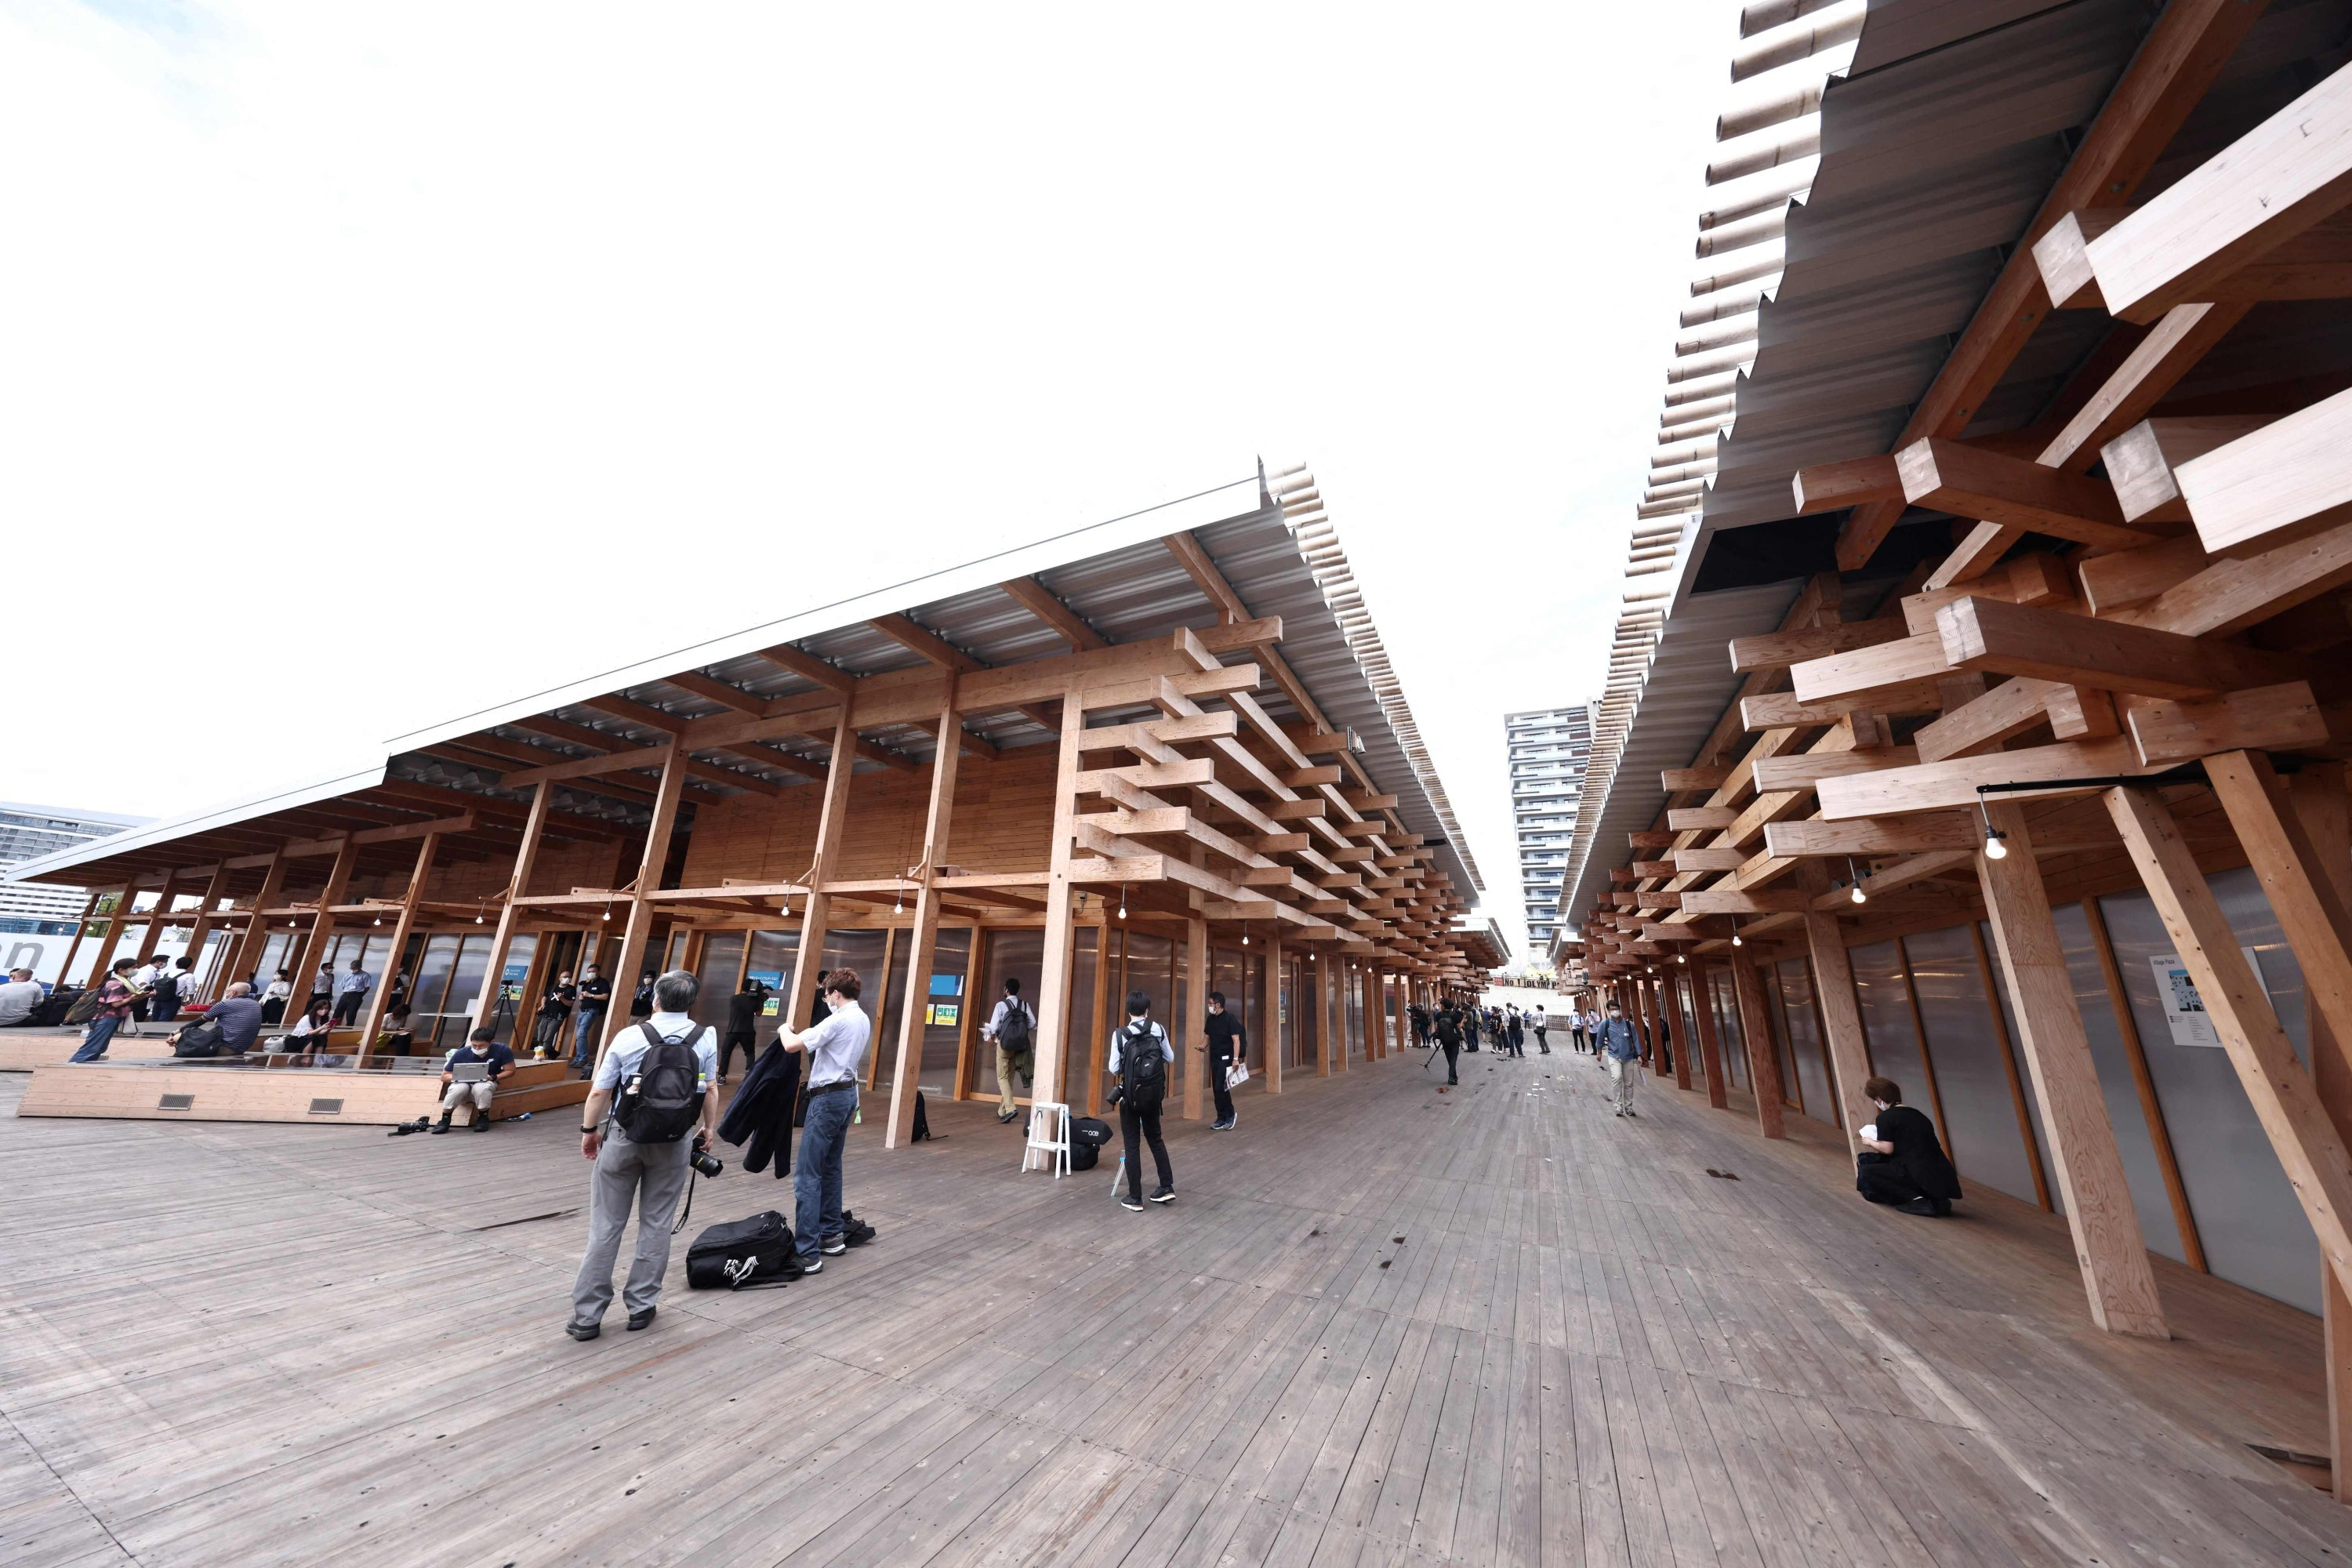 A general view of the wooden architecture of the 'Village Plaza,' at the Olympic Village for the 2020 Tokyo Olympic Games in Tokyo, Japan, June 20, 2021. (AFP Photo)